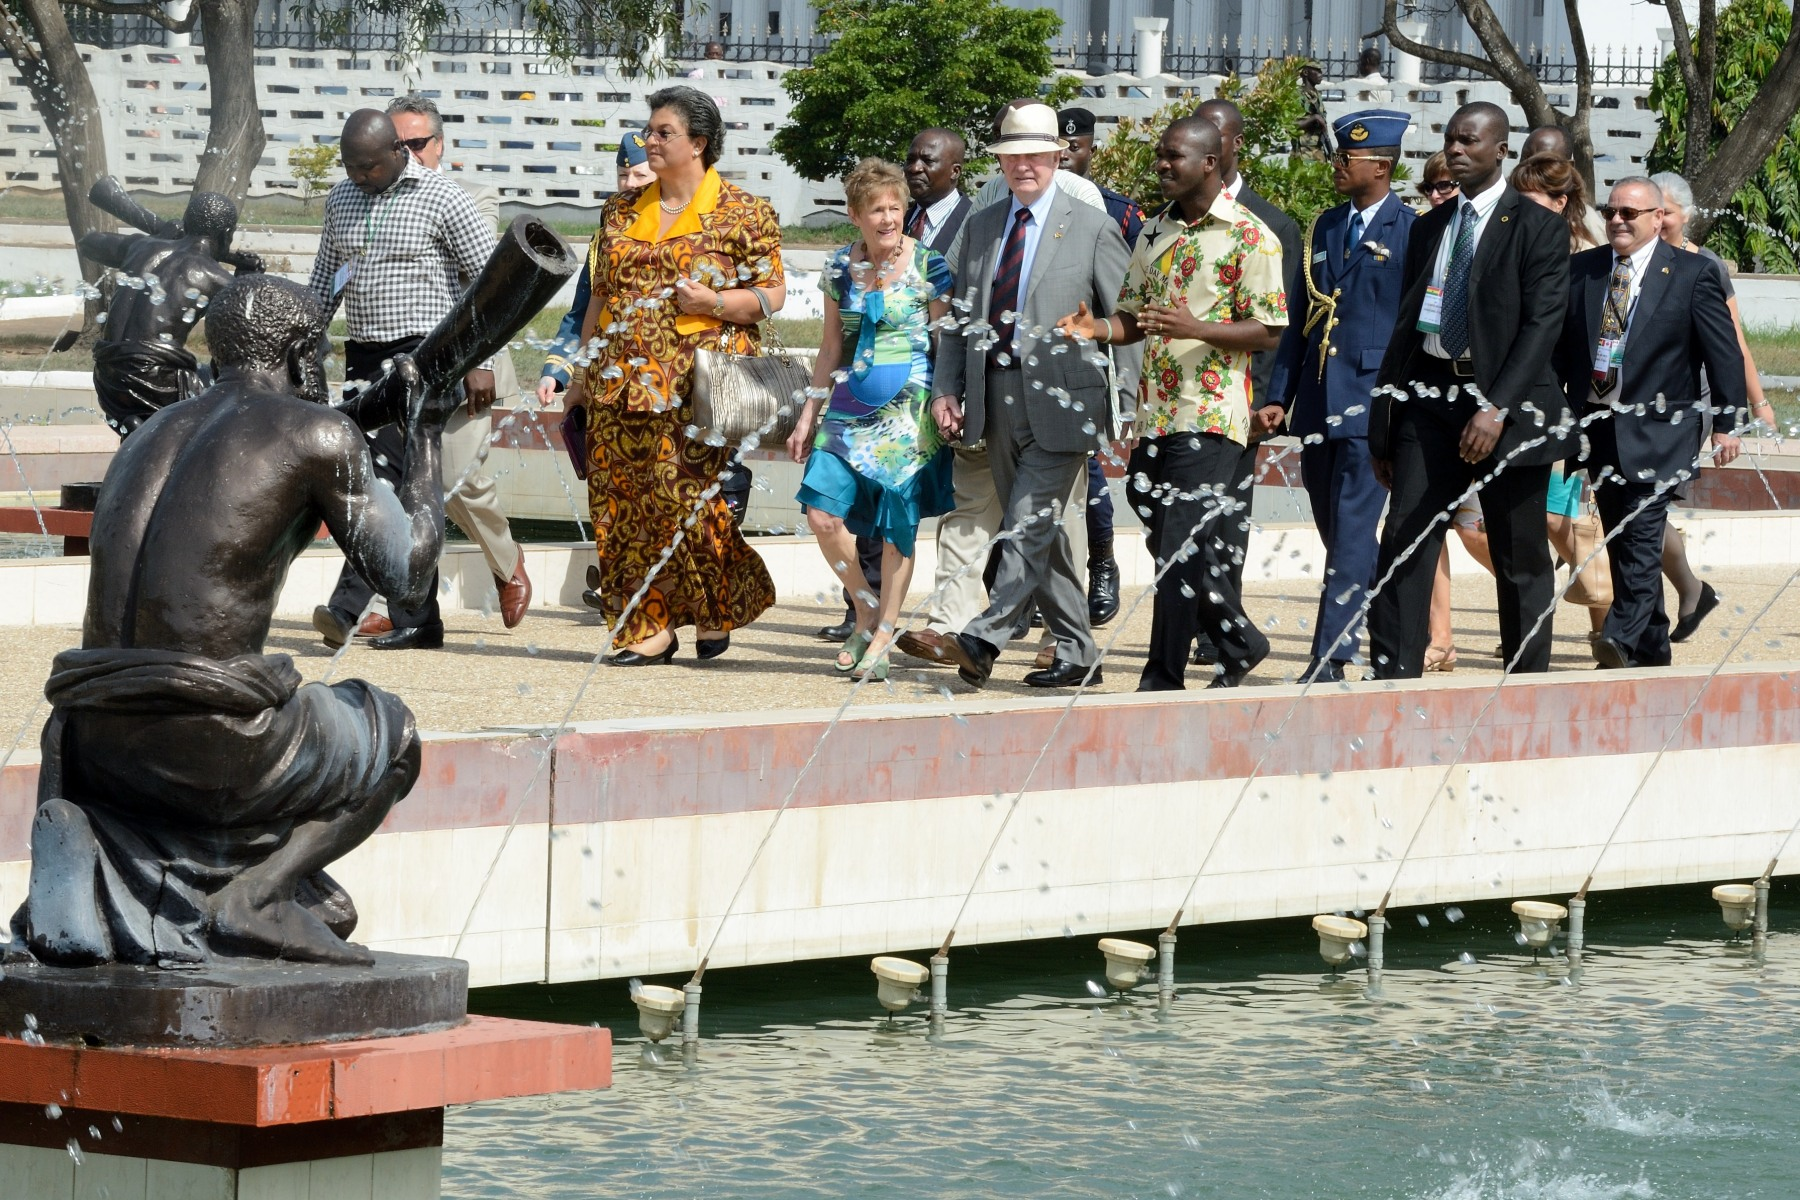 On the morning of May 14, Their Excellencies arrived at Kwame Nkrumah Memorial Park for a wreath-laying ceremony.